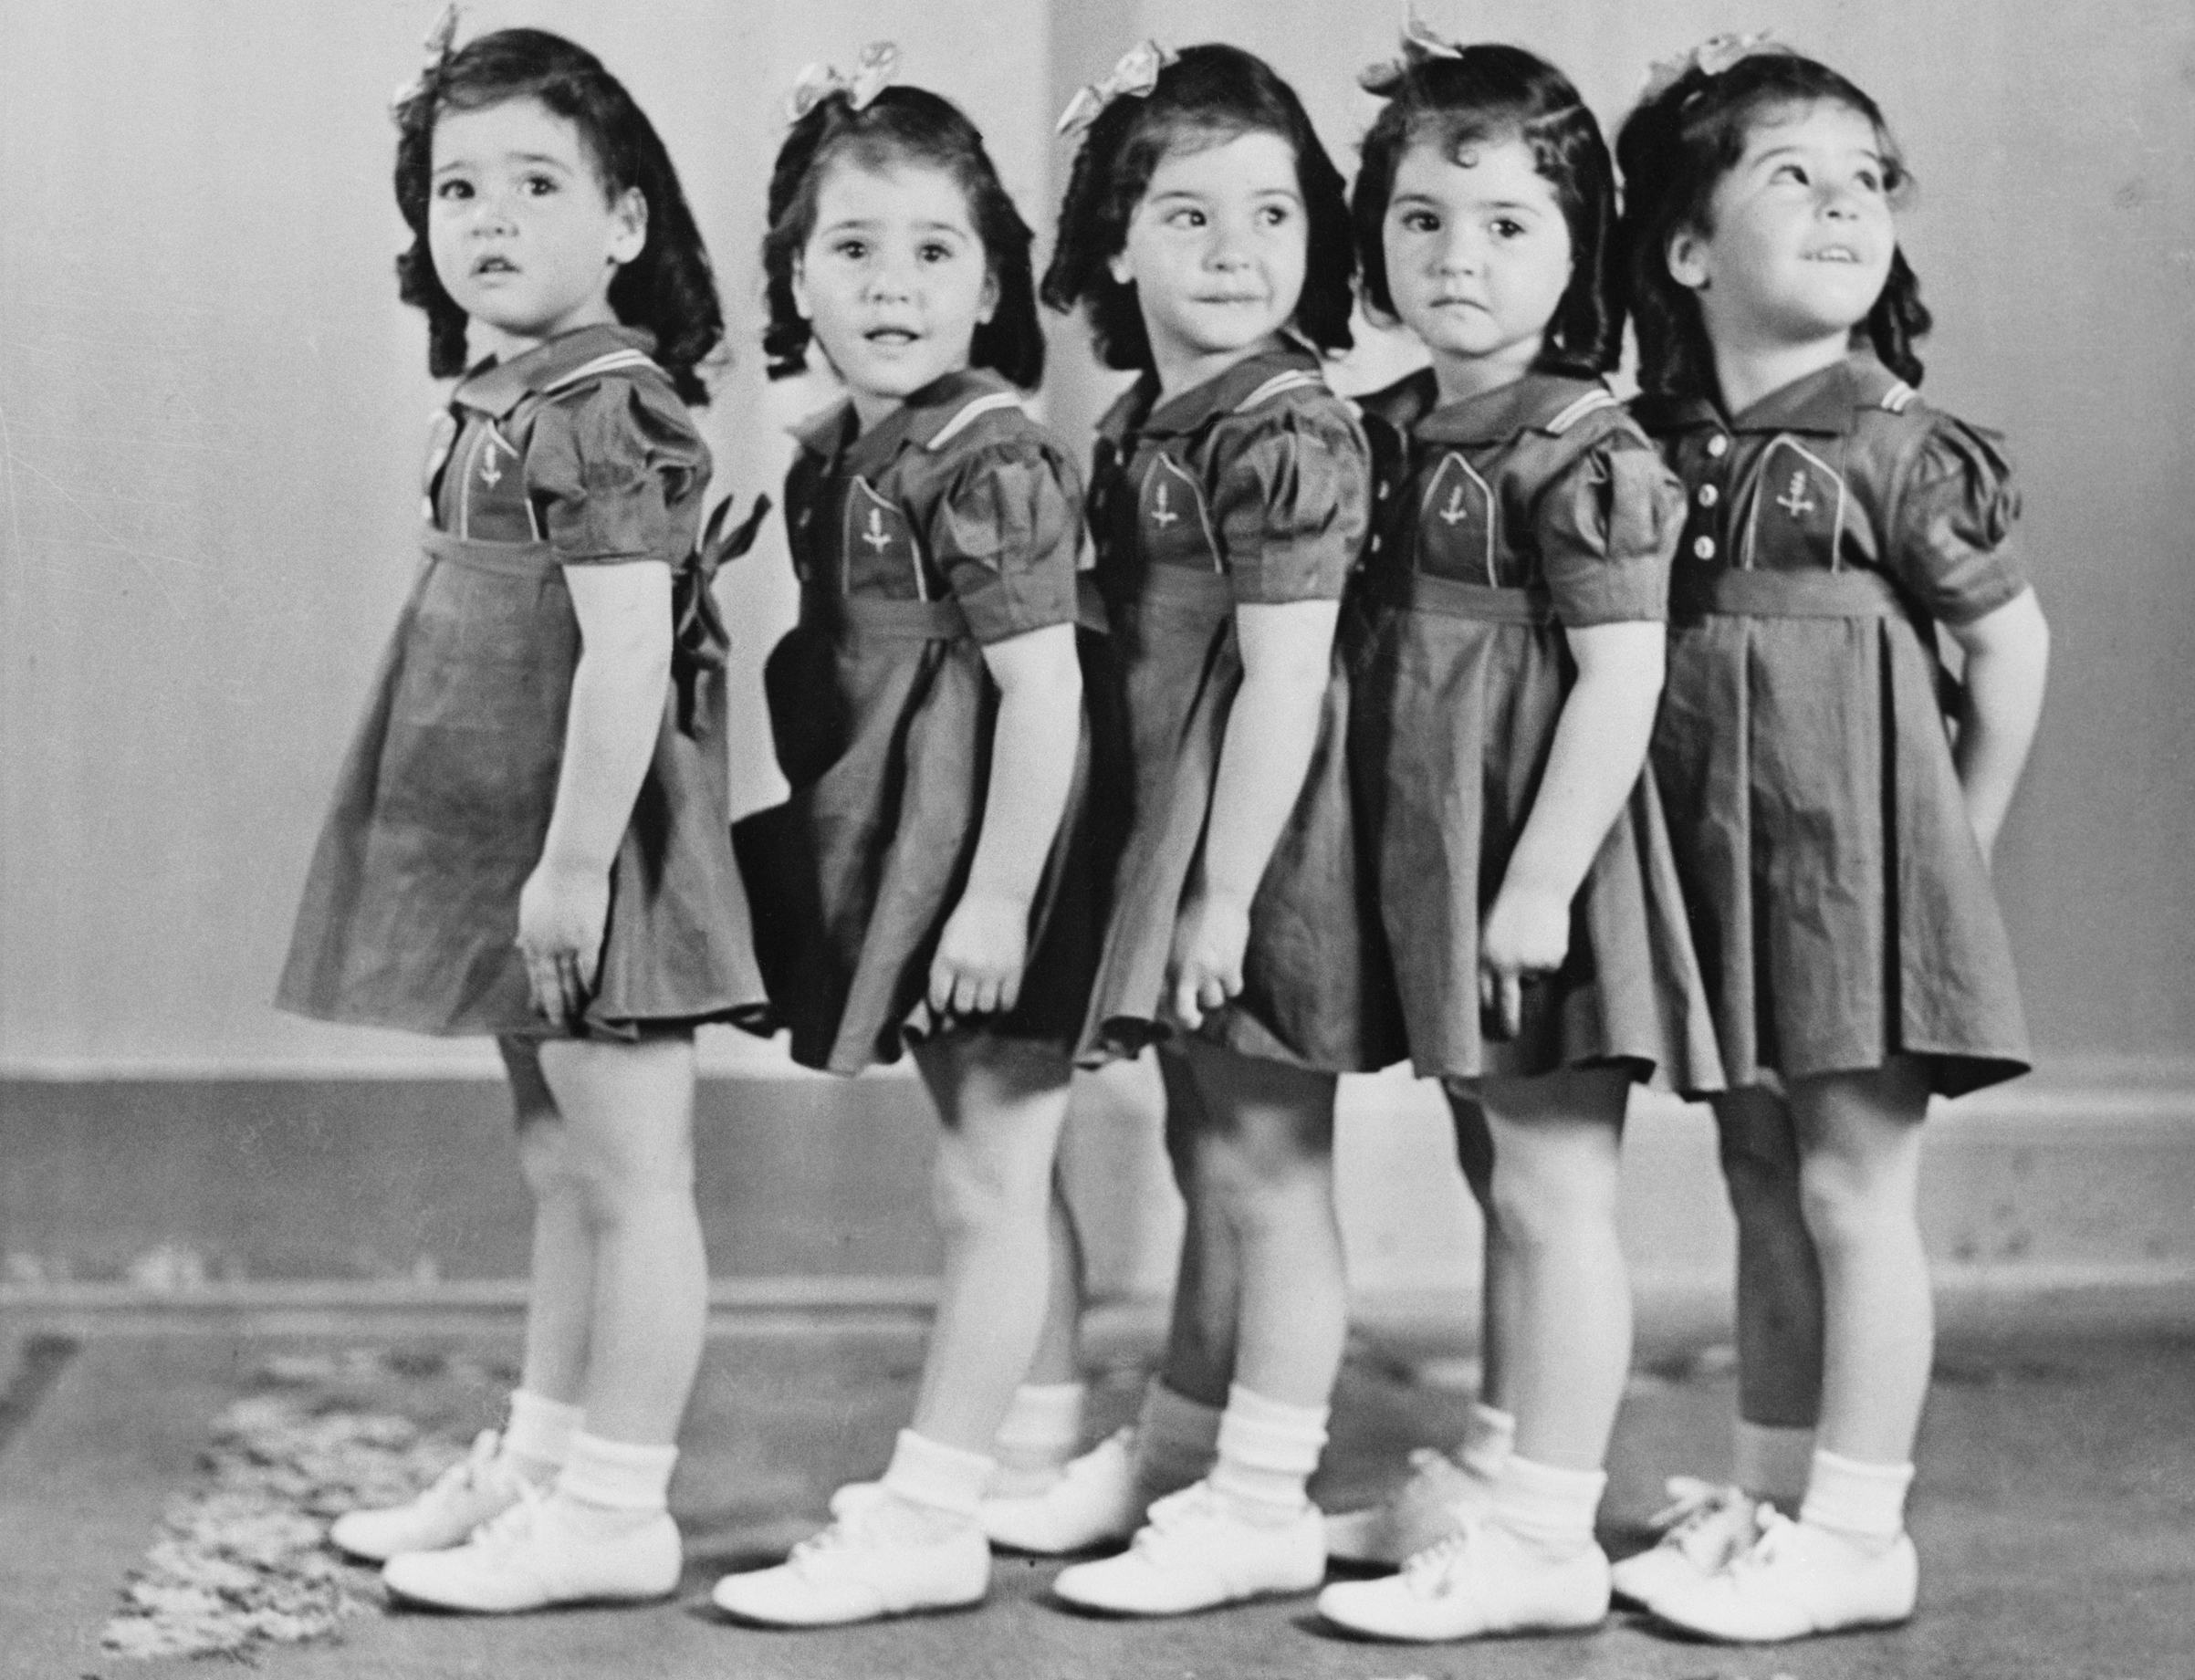 The world-famed Dionne Quintuplets in 1938 when they were 4 years old.